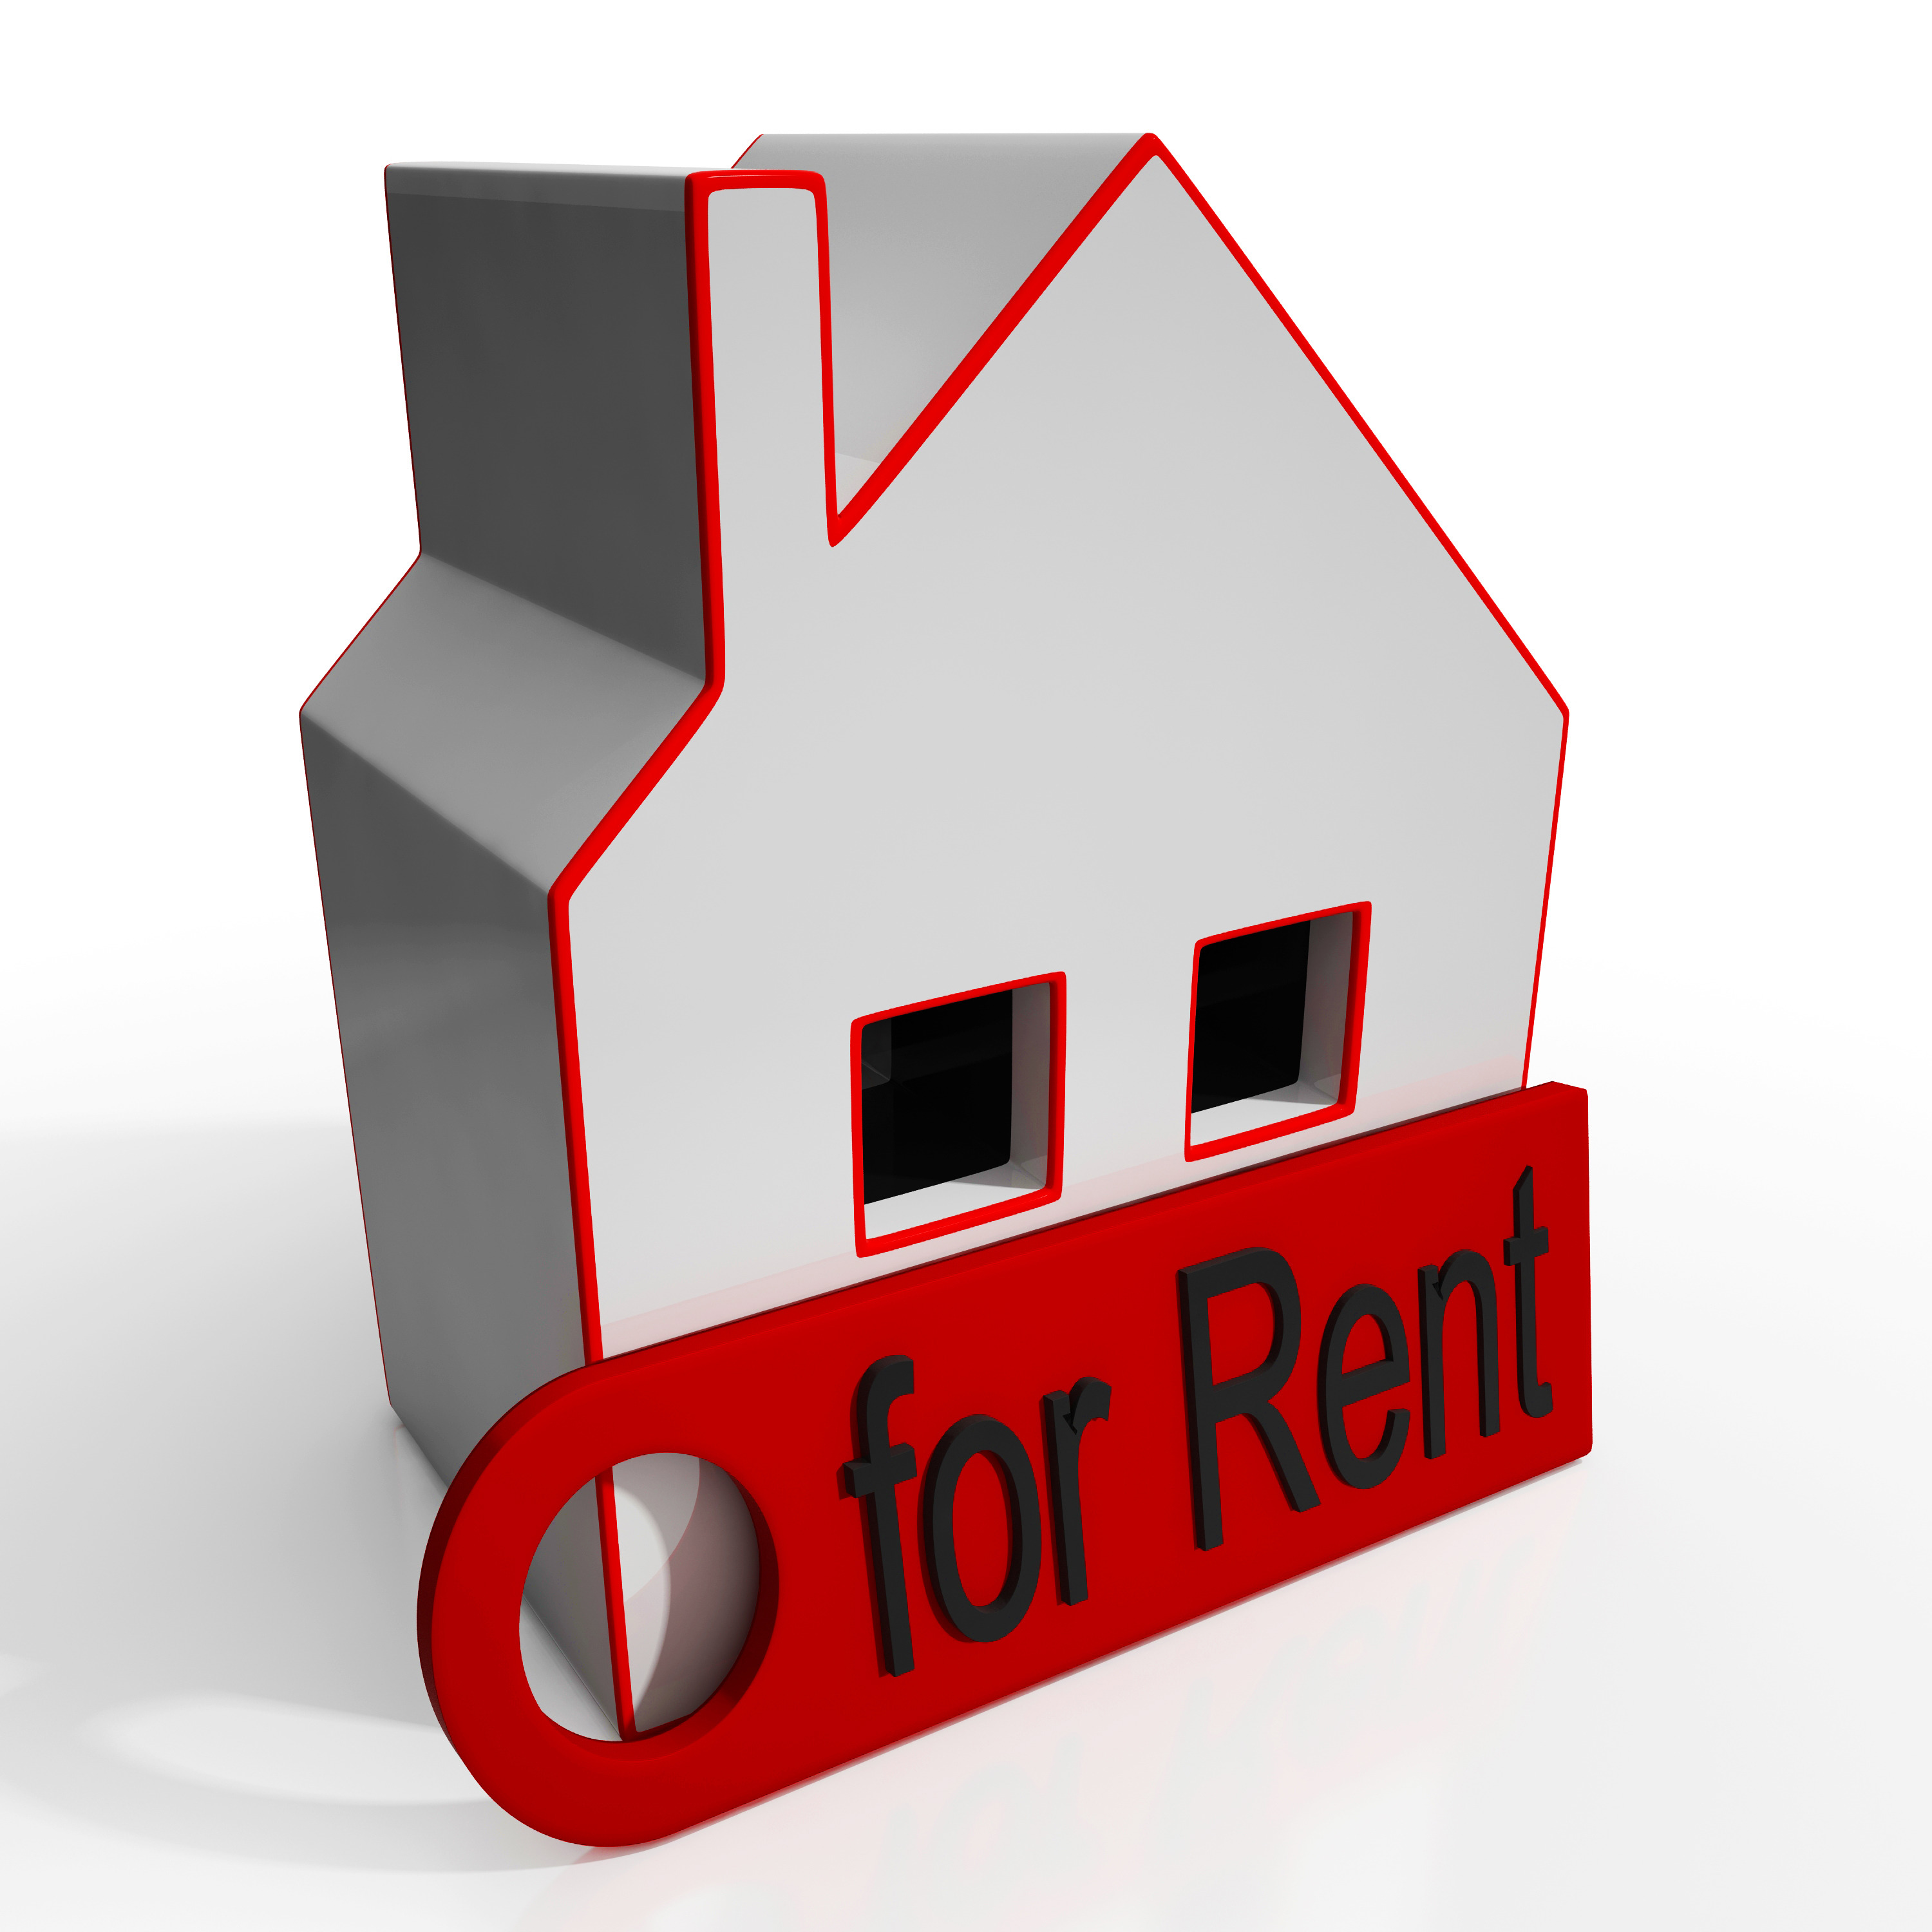 Department For Rent